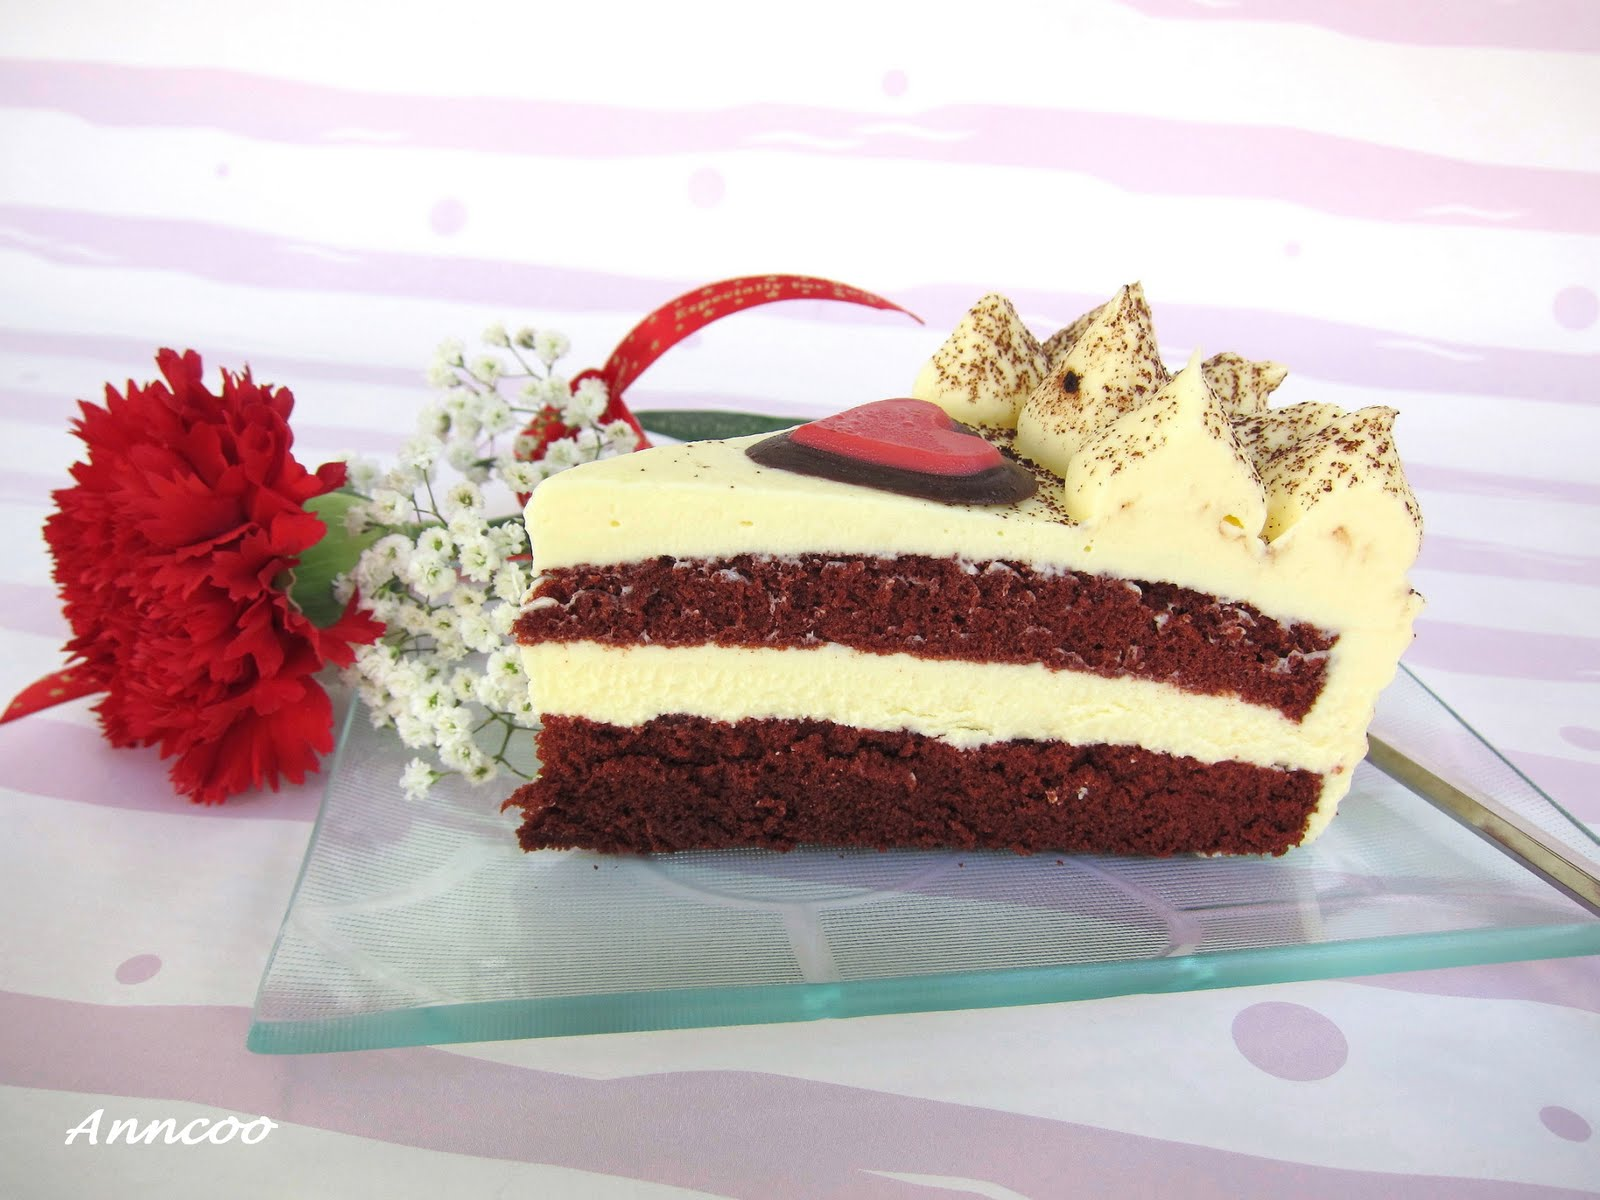 Chocolate Sponge Cake With Cream Cheese Frosting Anncoo Journal